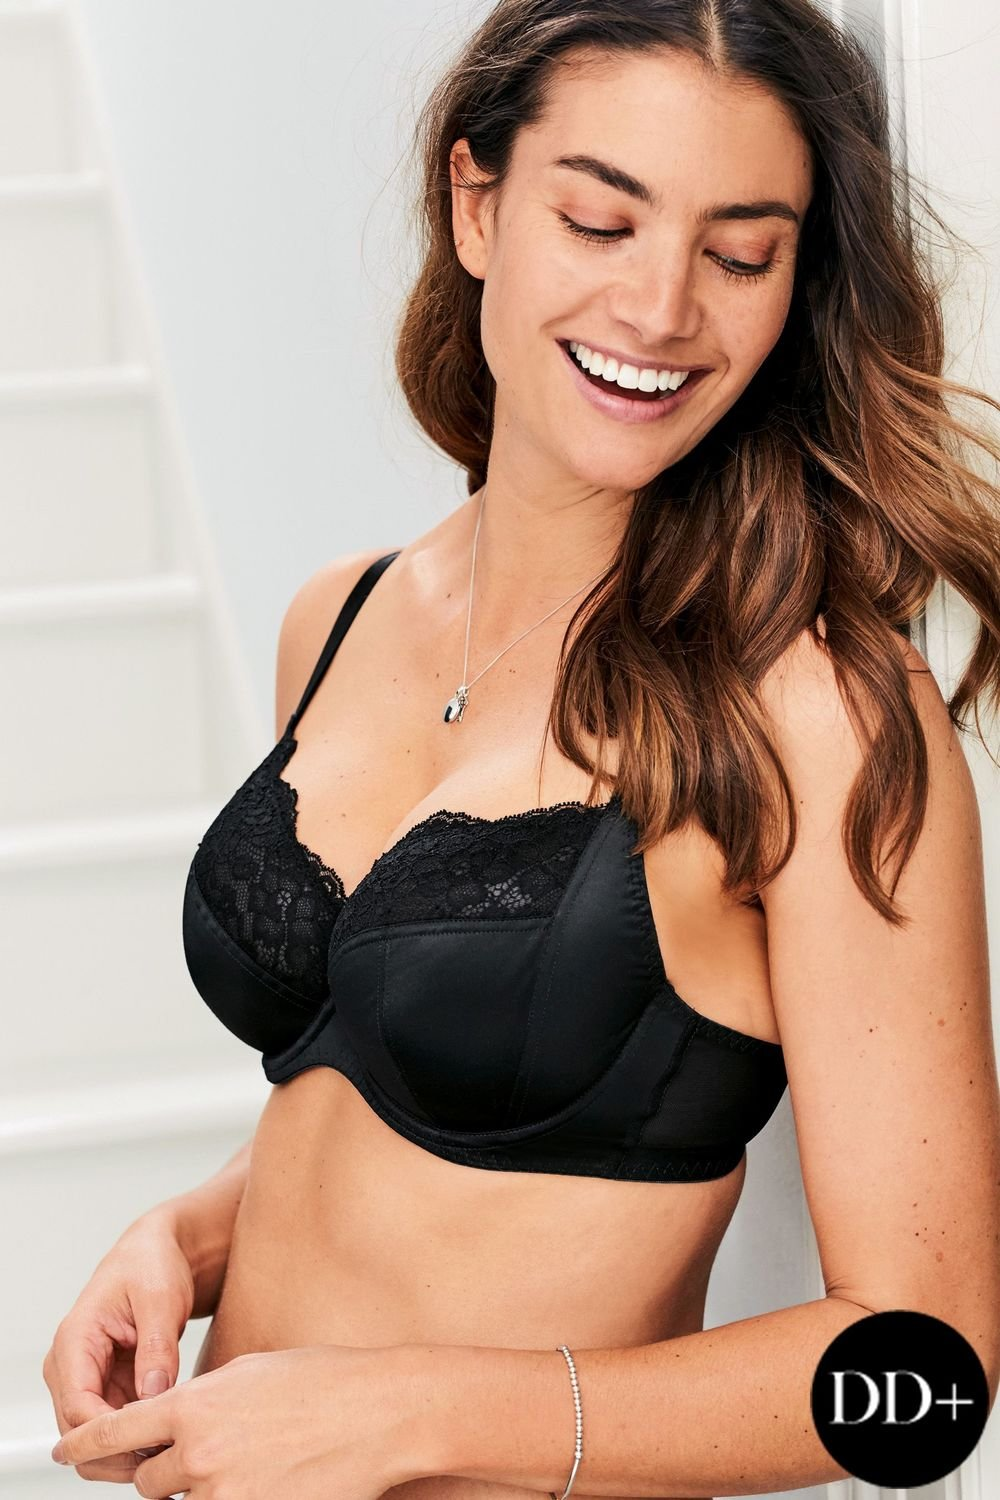 30c594ac9a Next DD+ Georgie Non Padded Wired Full Cup Bras Two Pack Online ...